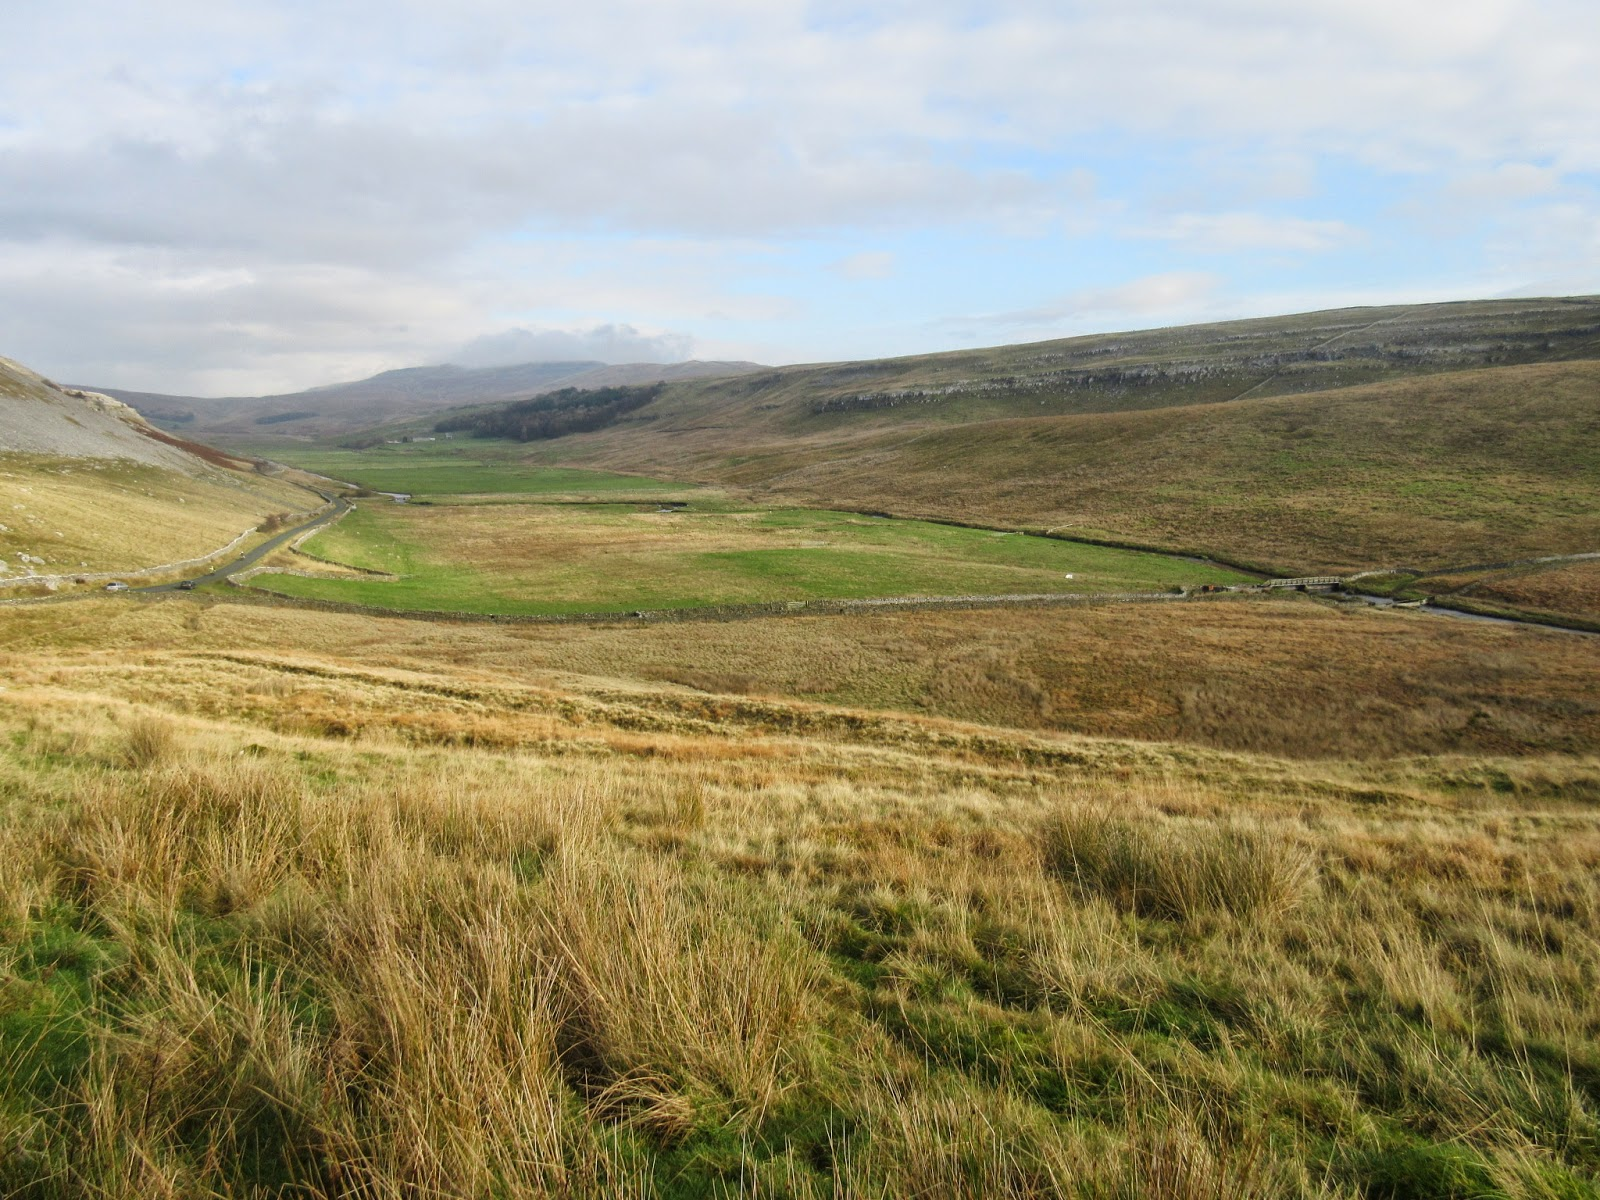 Looking north-east along the former lake floor of Kingsdale, where water was held back by the terminal moraine barrier of Raven Ray. Stephen Oldfield